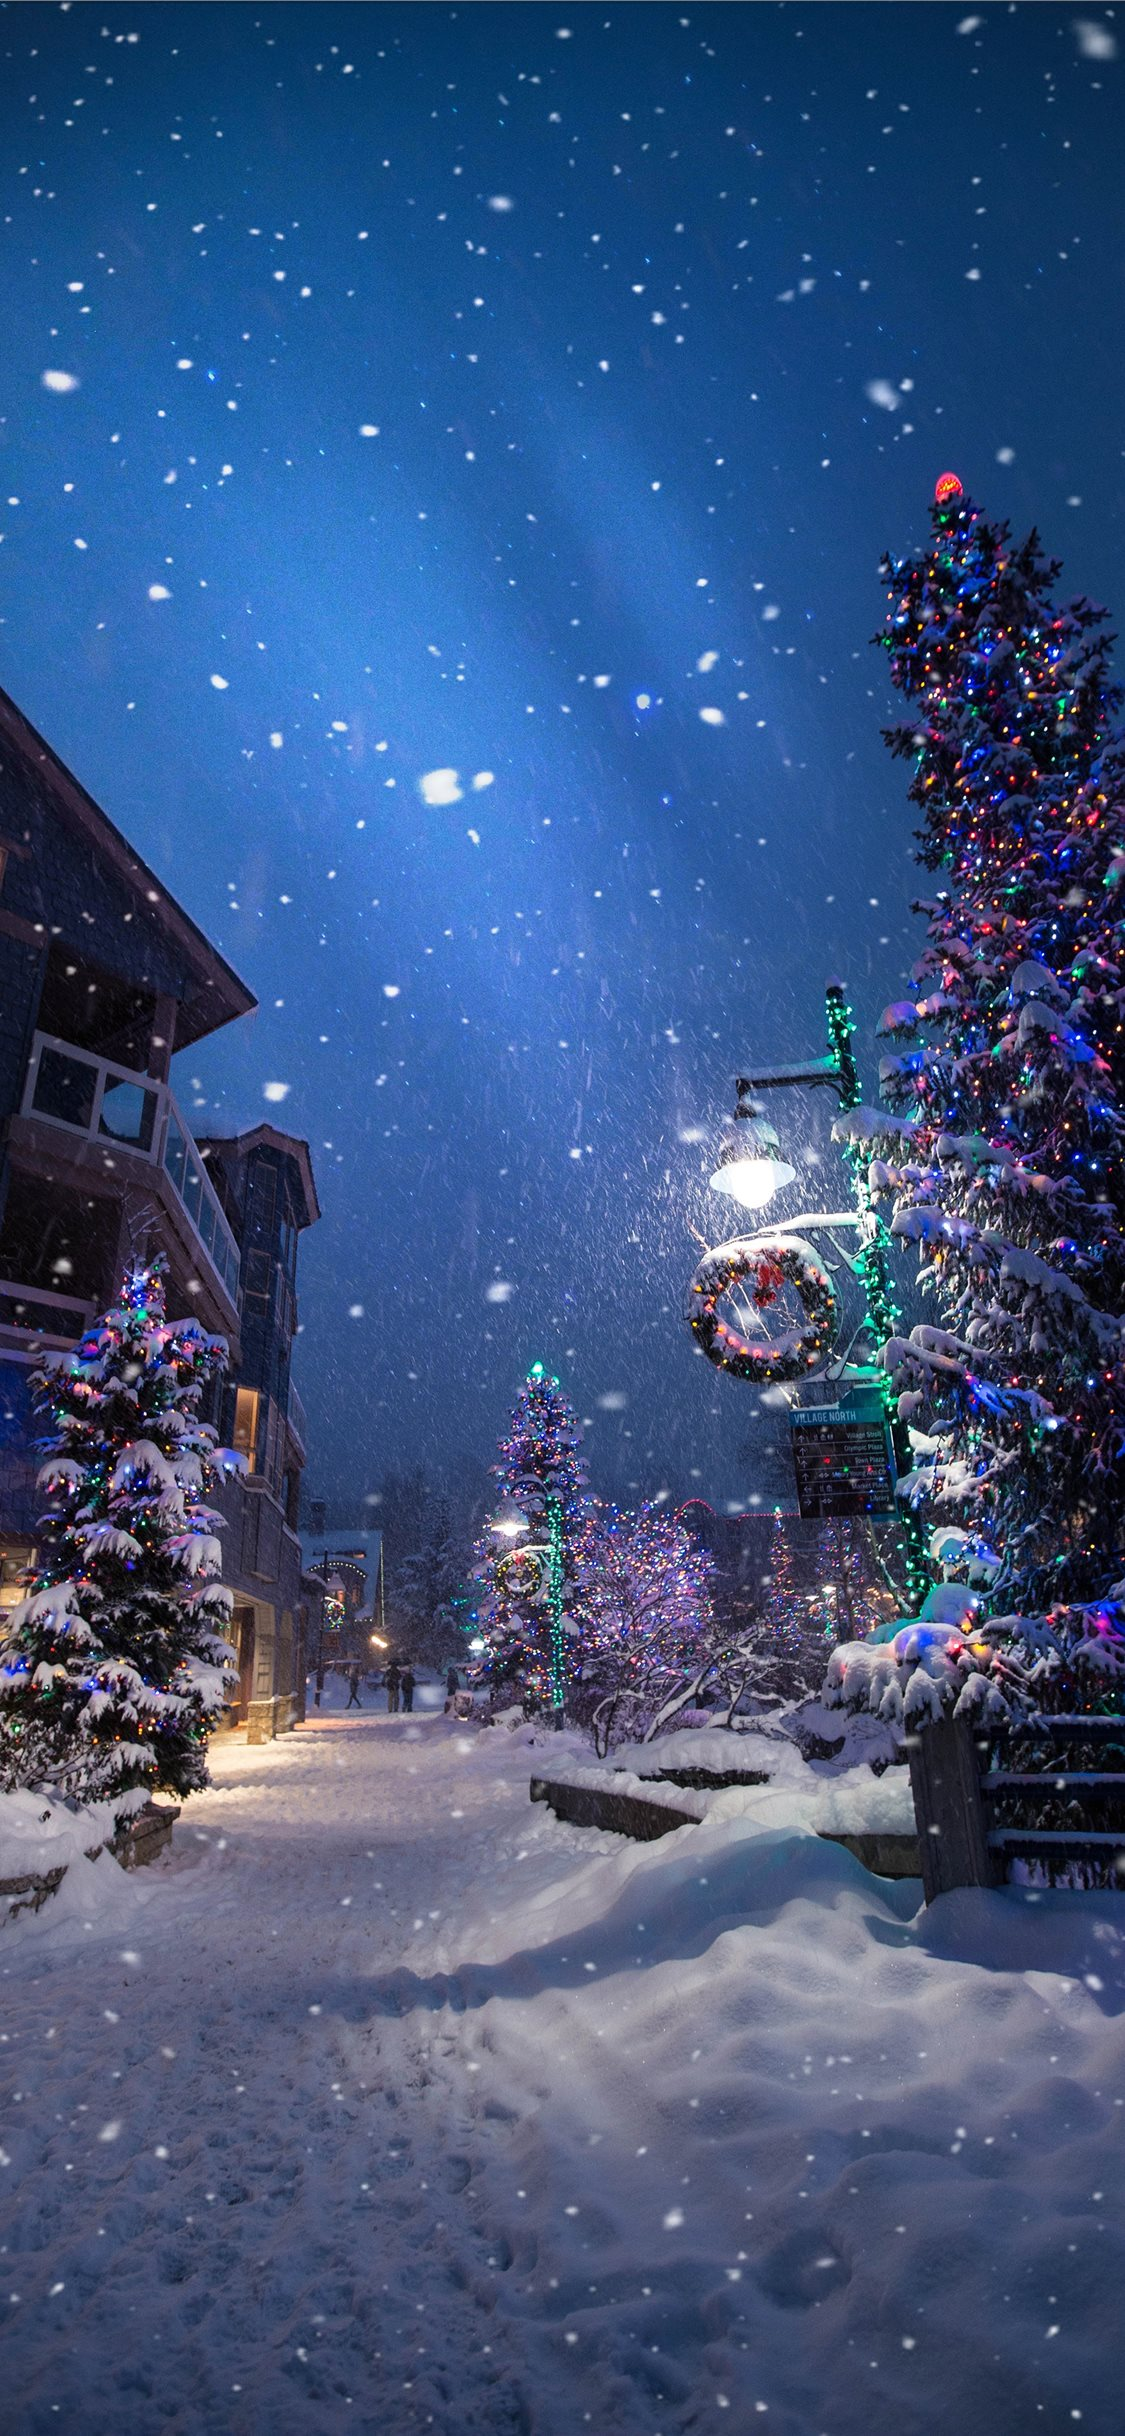 Magic in the Whistler Village iphone 11 wallpaper ilikewallpaper com